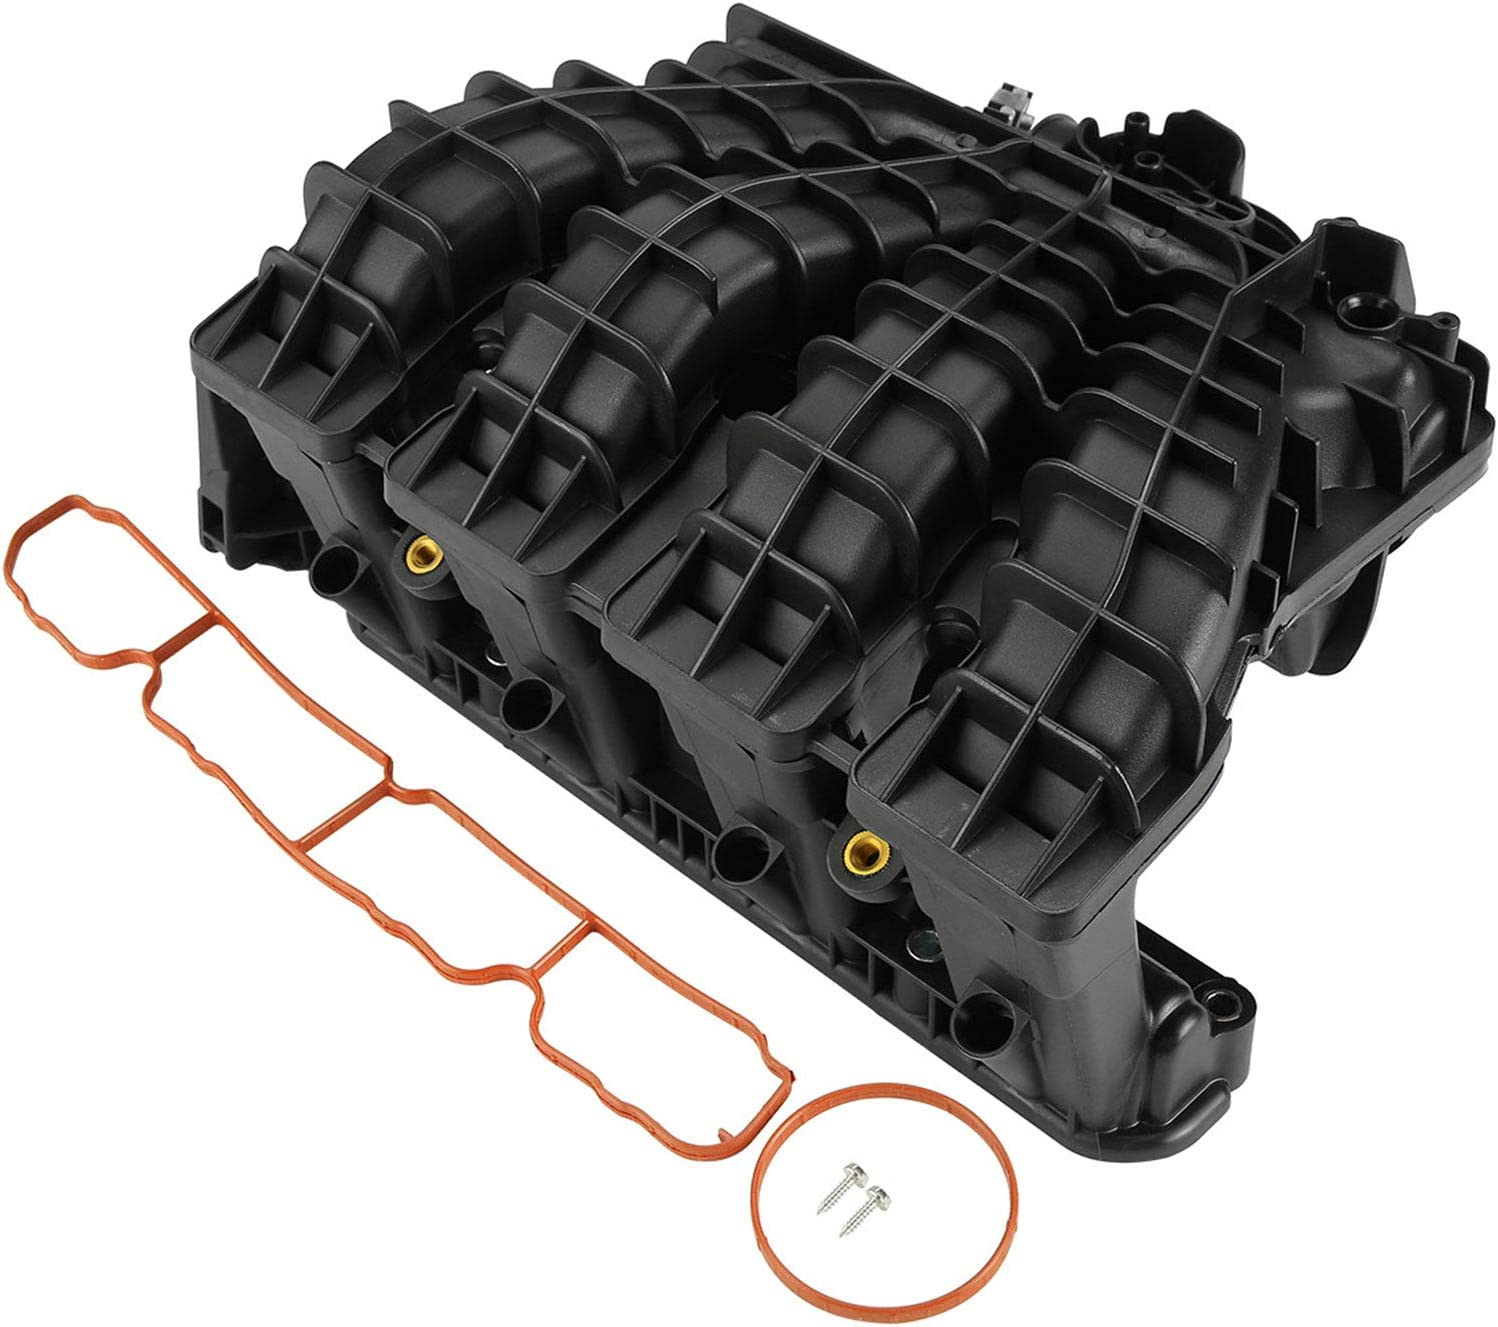 Intake Manifold Cash special price with Excellence Gaskets Replacement Dodge Avenger Journ for